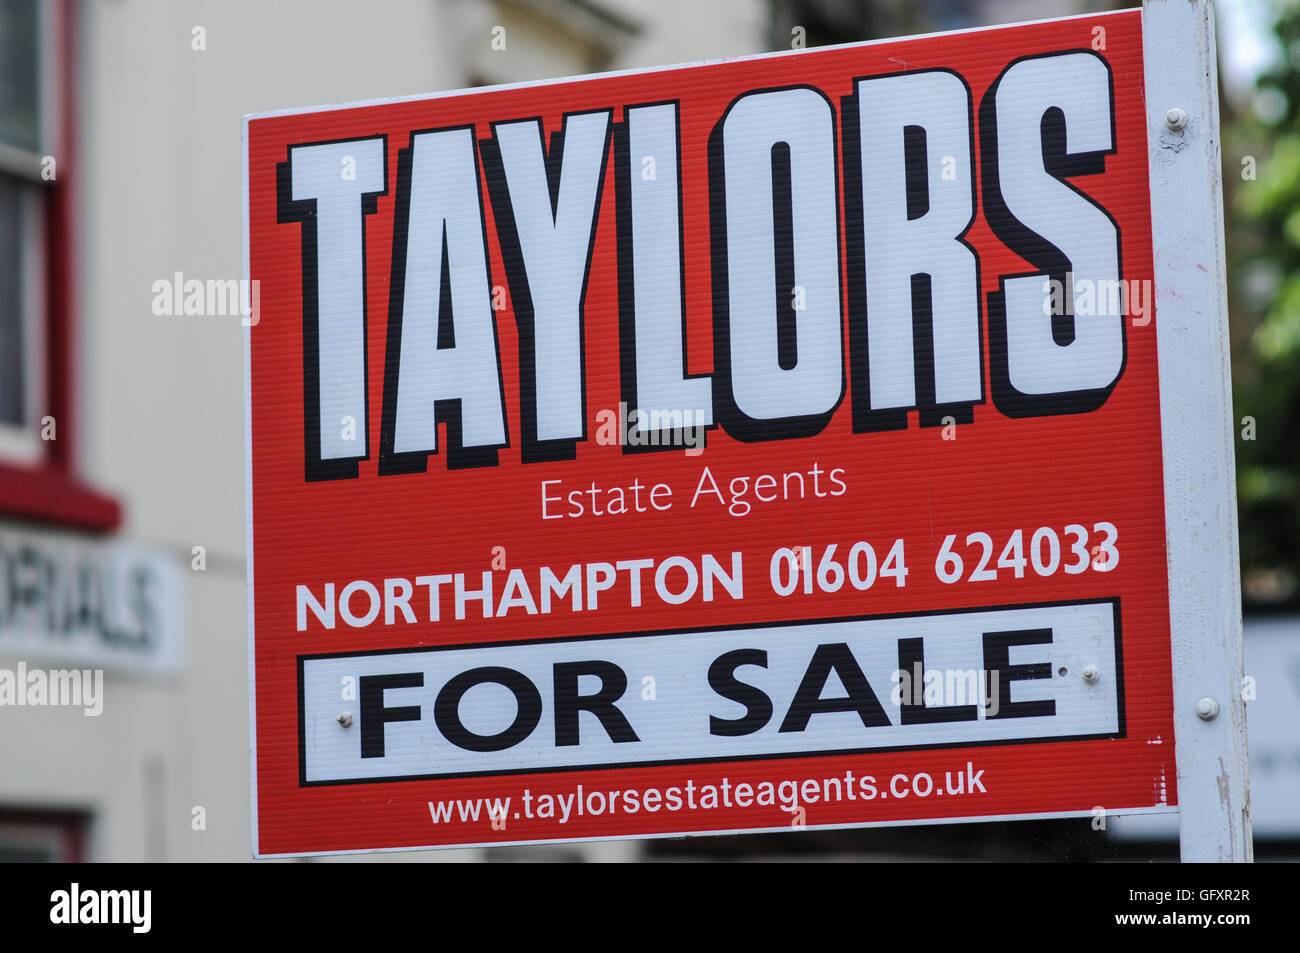 Estate agent sign house sale - Stock Image